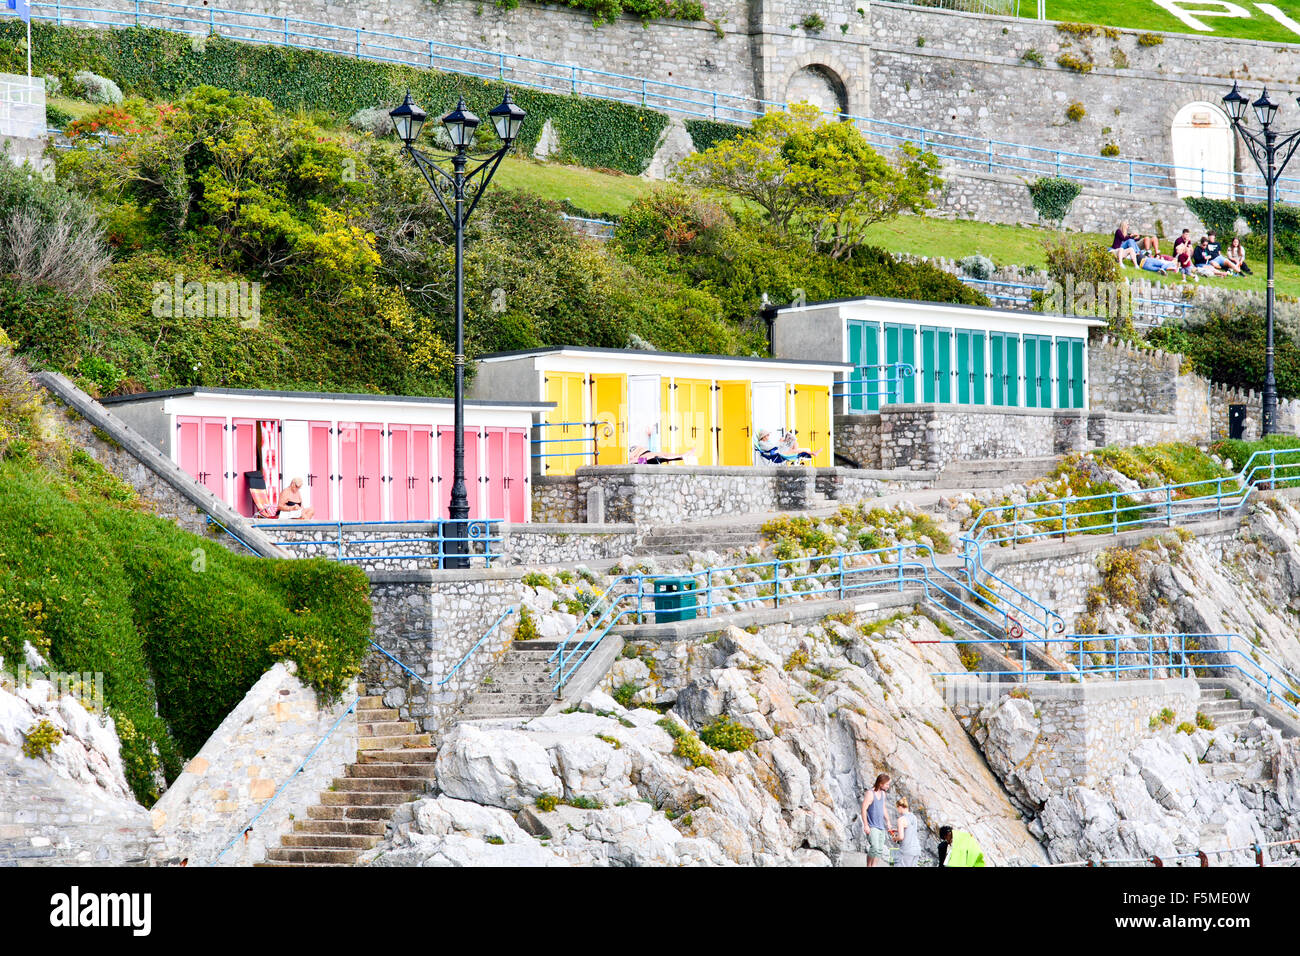 Beach Huts With Red Green Or Yellow Doors On Rocks Overlooking Sea